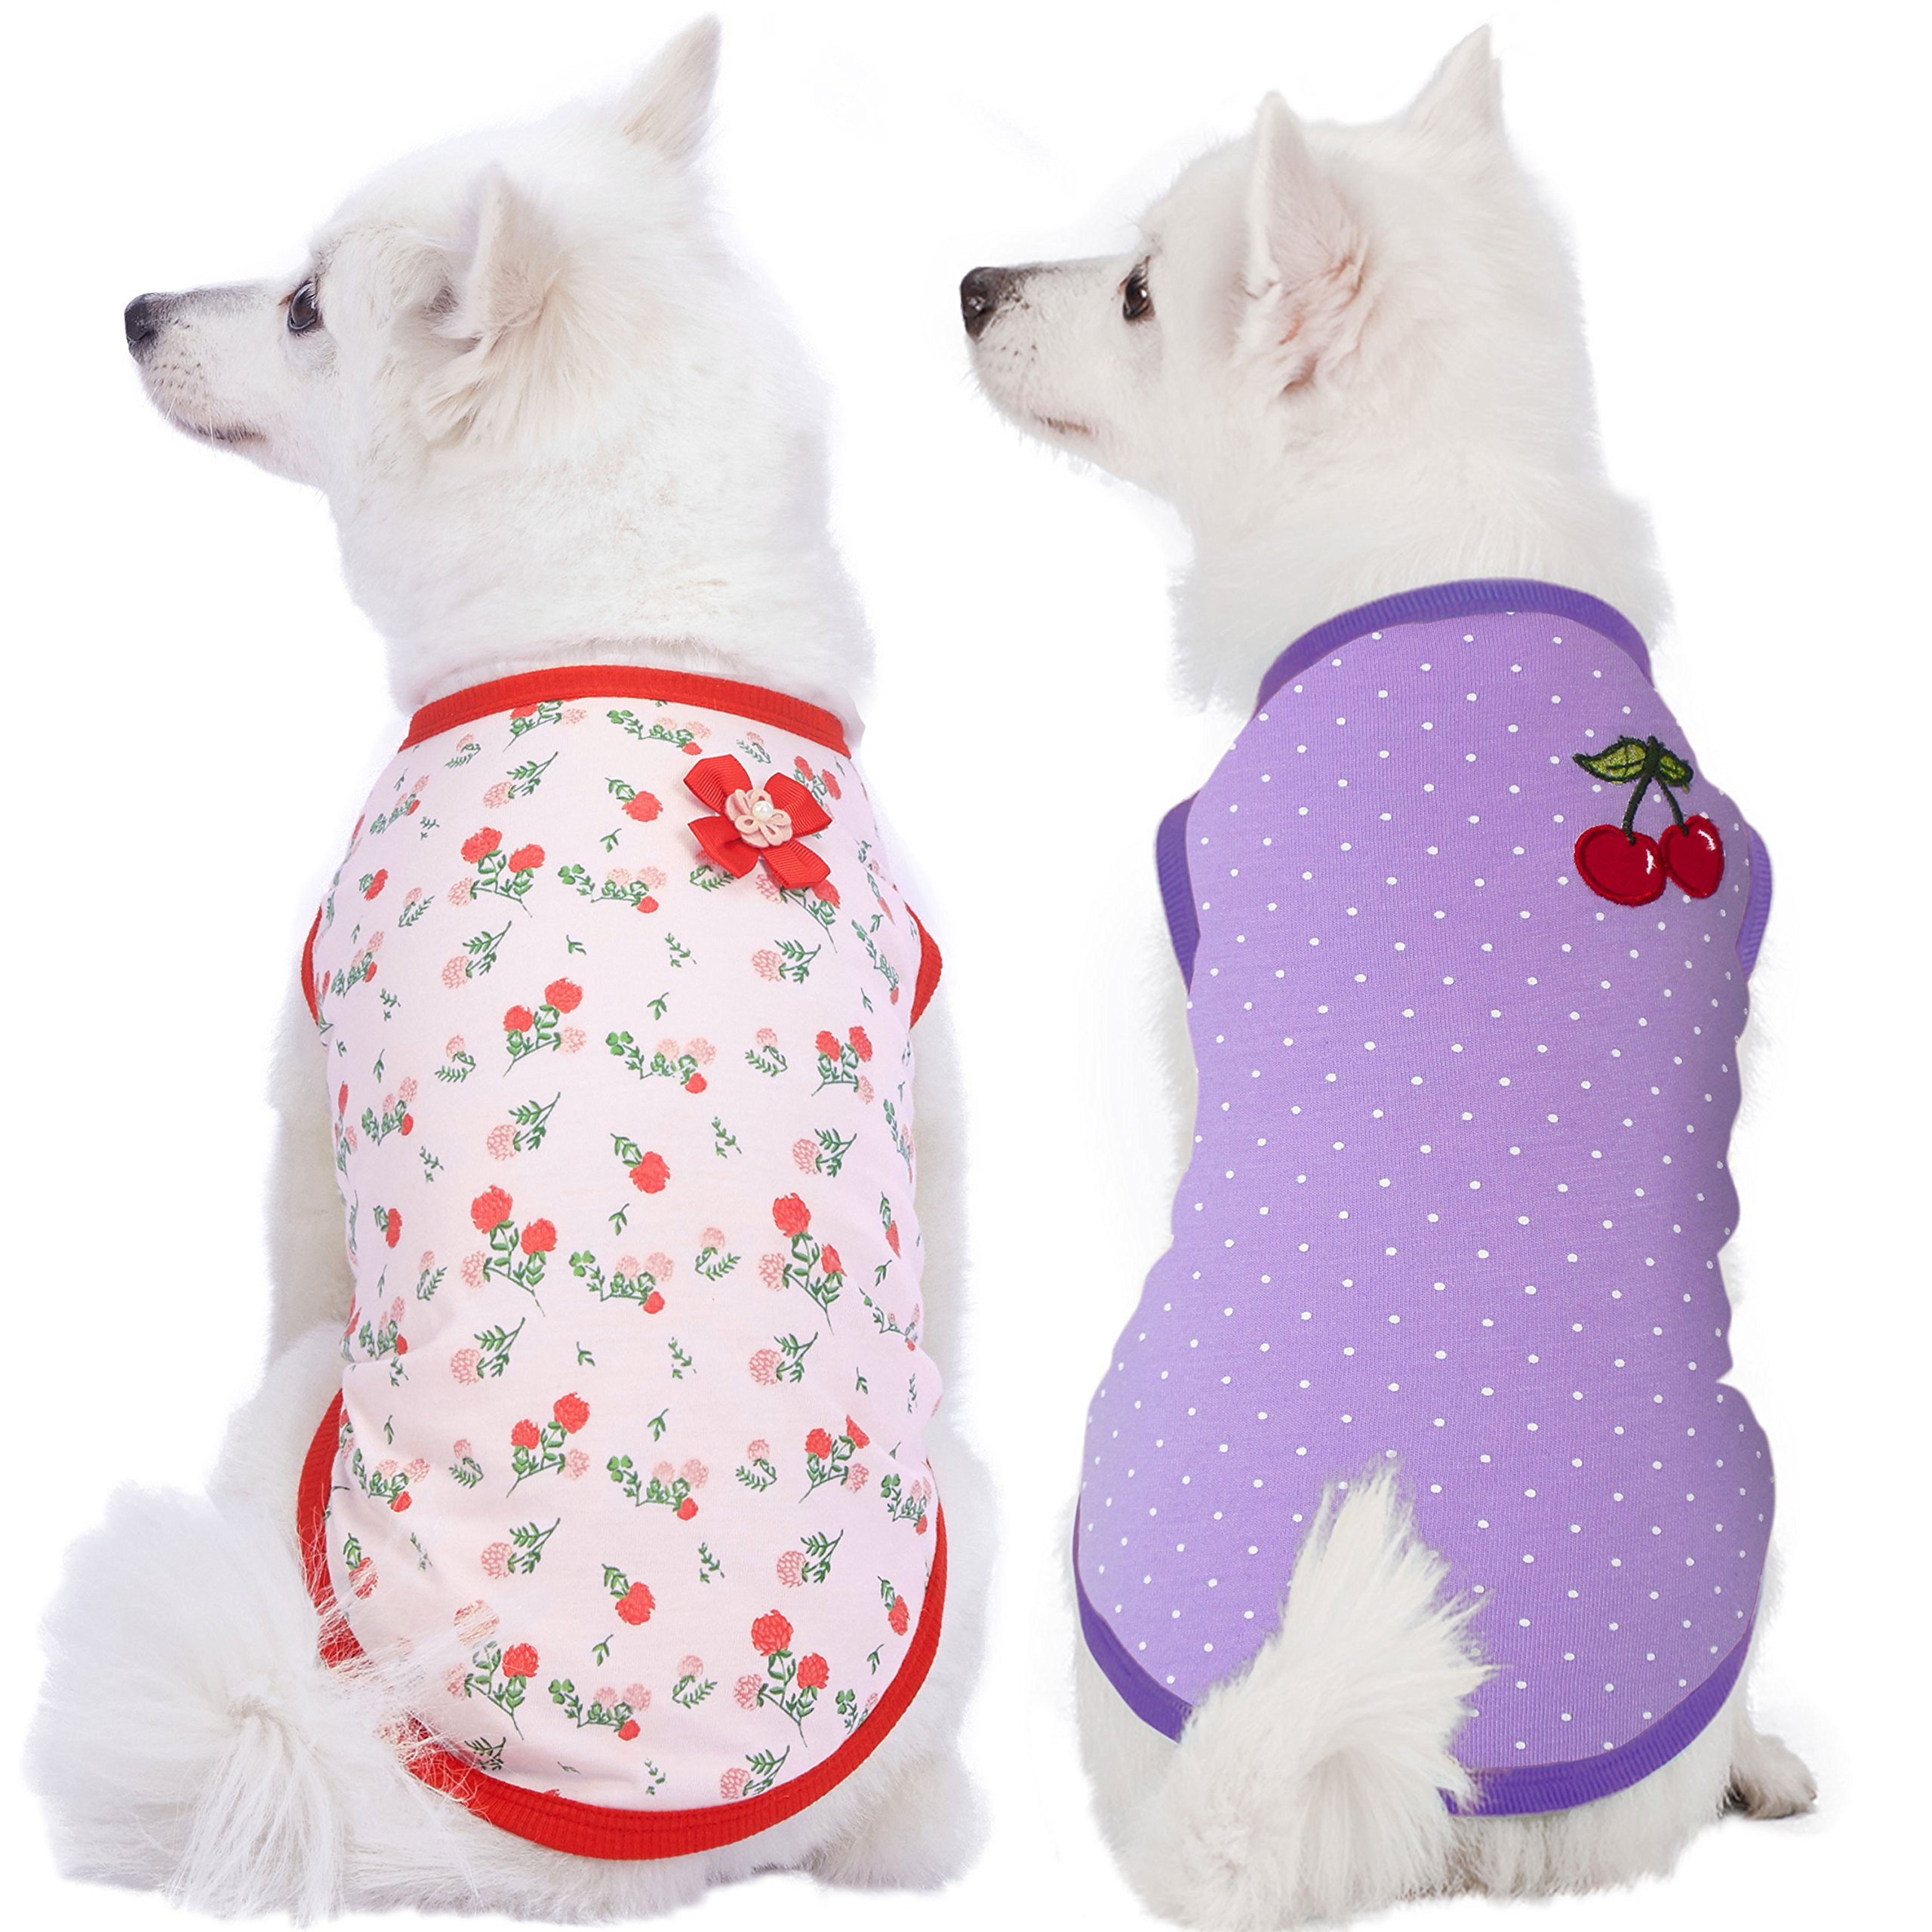 Blueberry Pet Pack of 2 Soft & Comfy Spring Hope Floral Cotton Blend Dog T Shirts Tank Top, Back Length 14'', Clothes for Dogs by Blueberry Pet